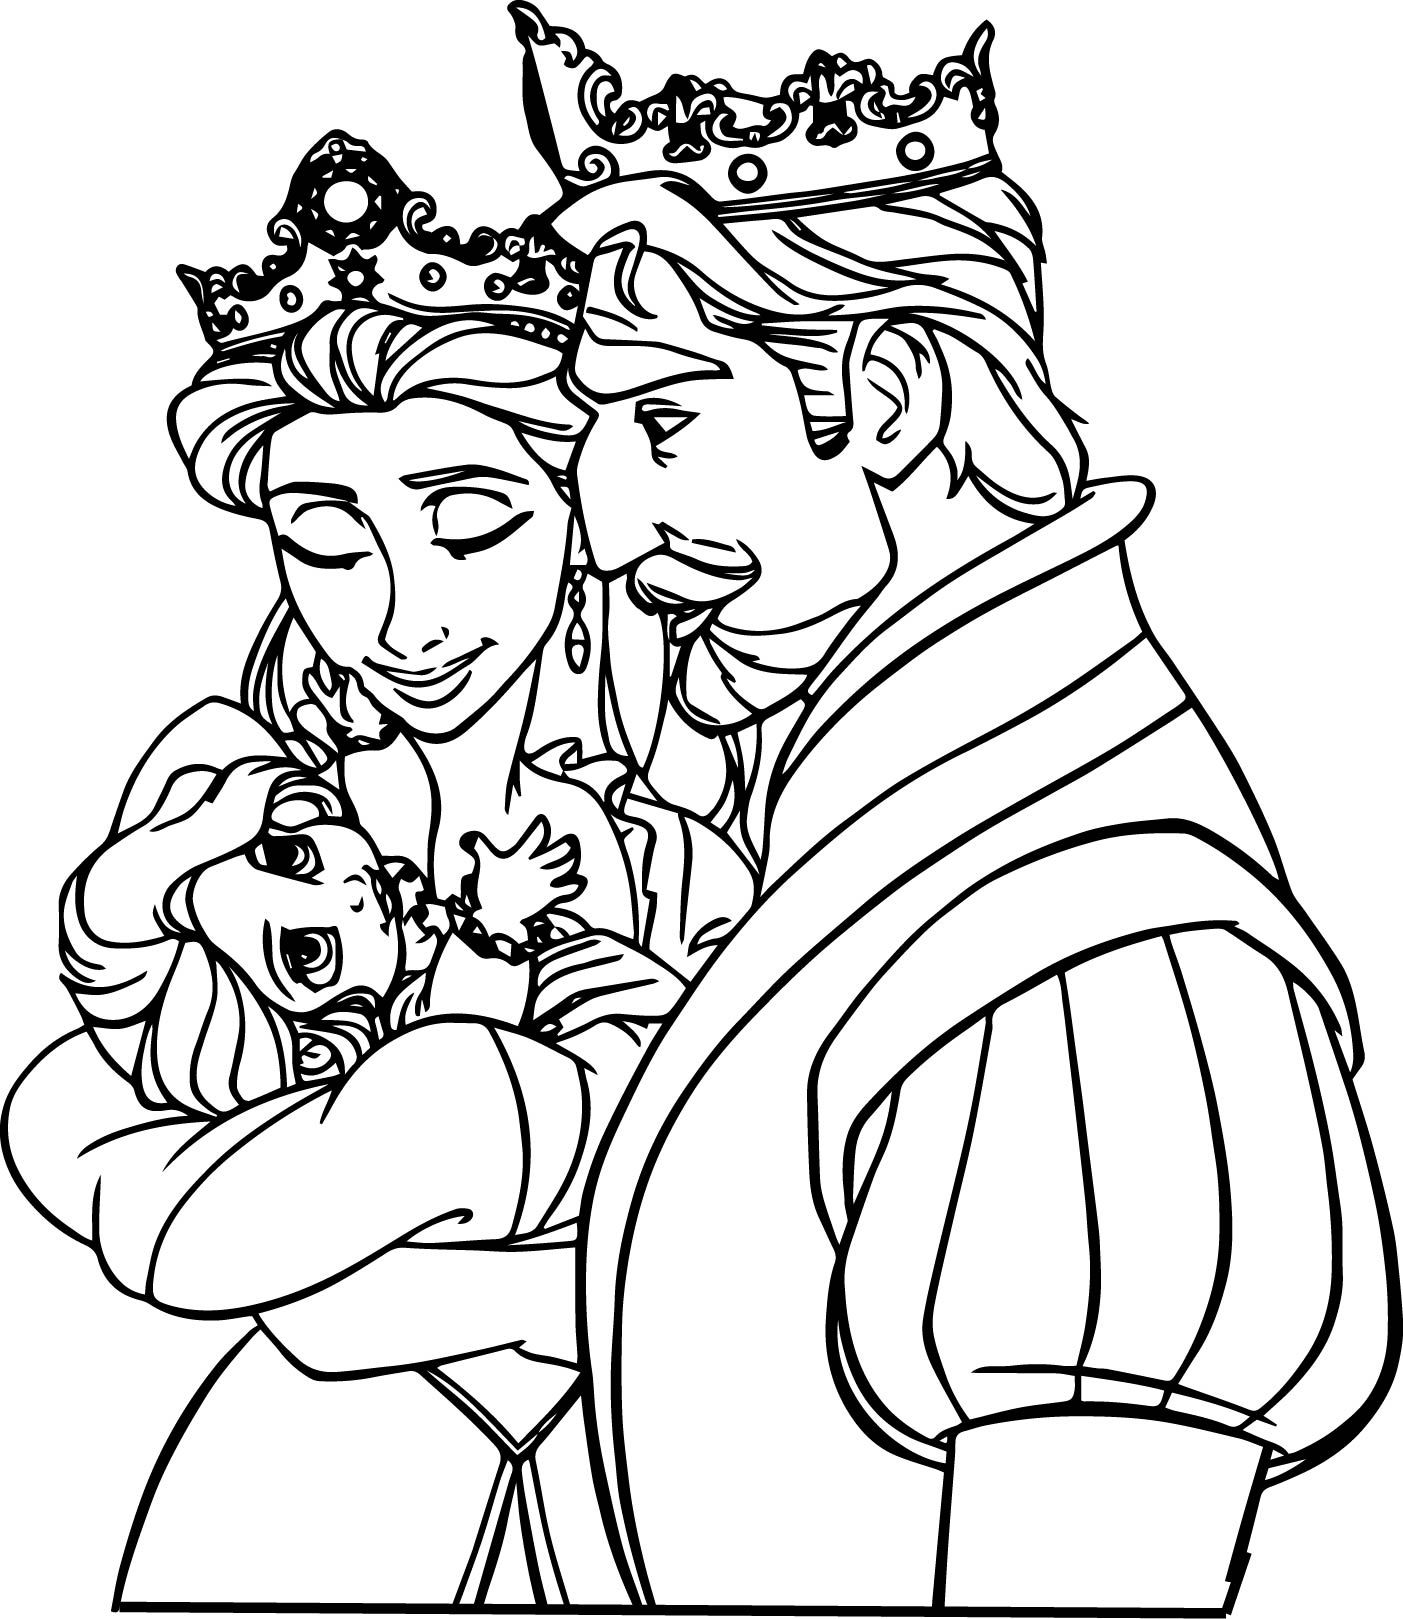 Baby Elephant Coloring Pages 94810 Prints And Colors Mcoloring Tangled Coloring Pages Rapunzel Coloring Pages Disney Coloring Pages